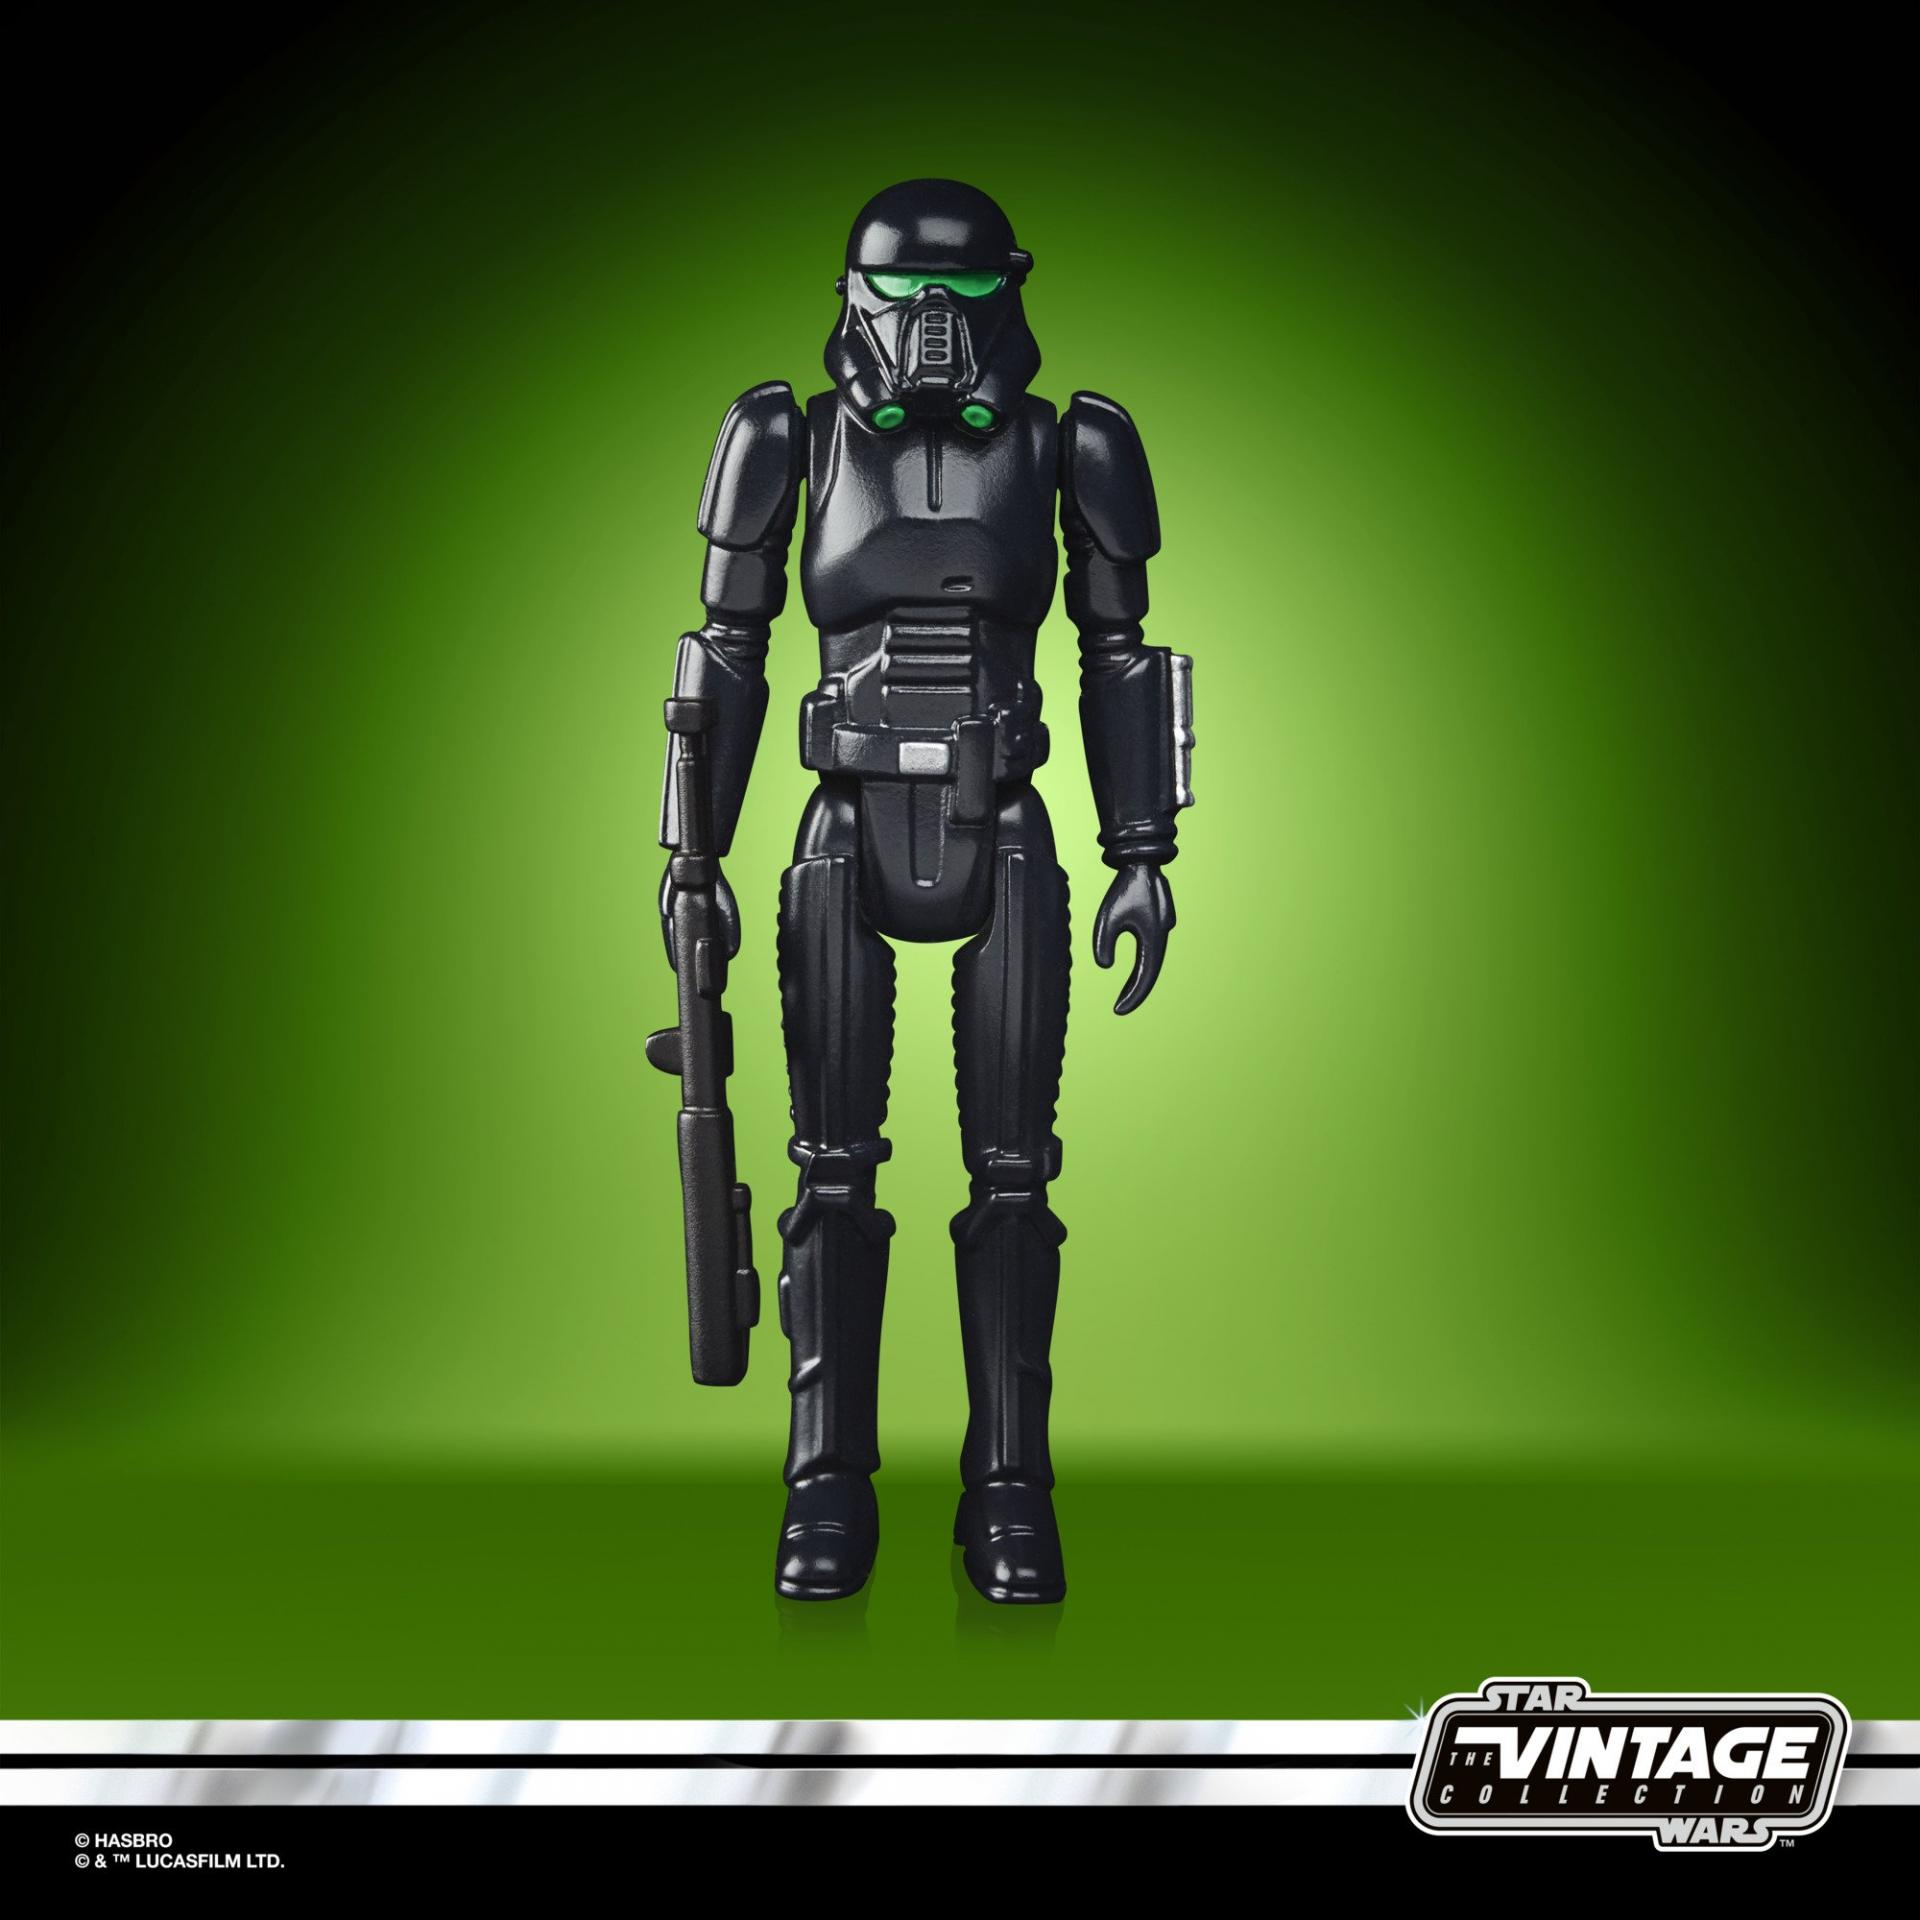 Tar wars the retro collection the mandalorian imperial death trooper1